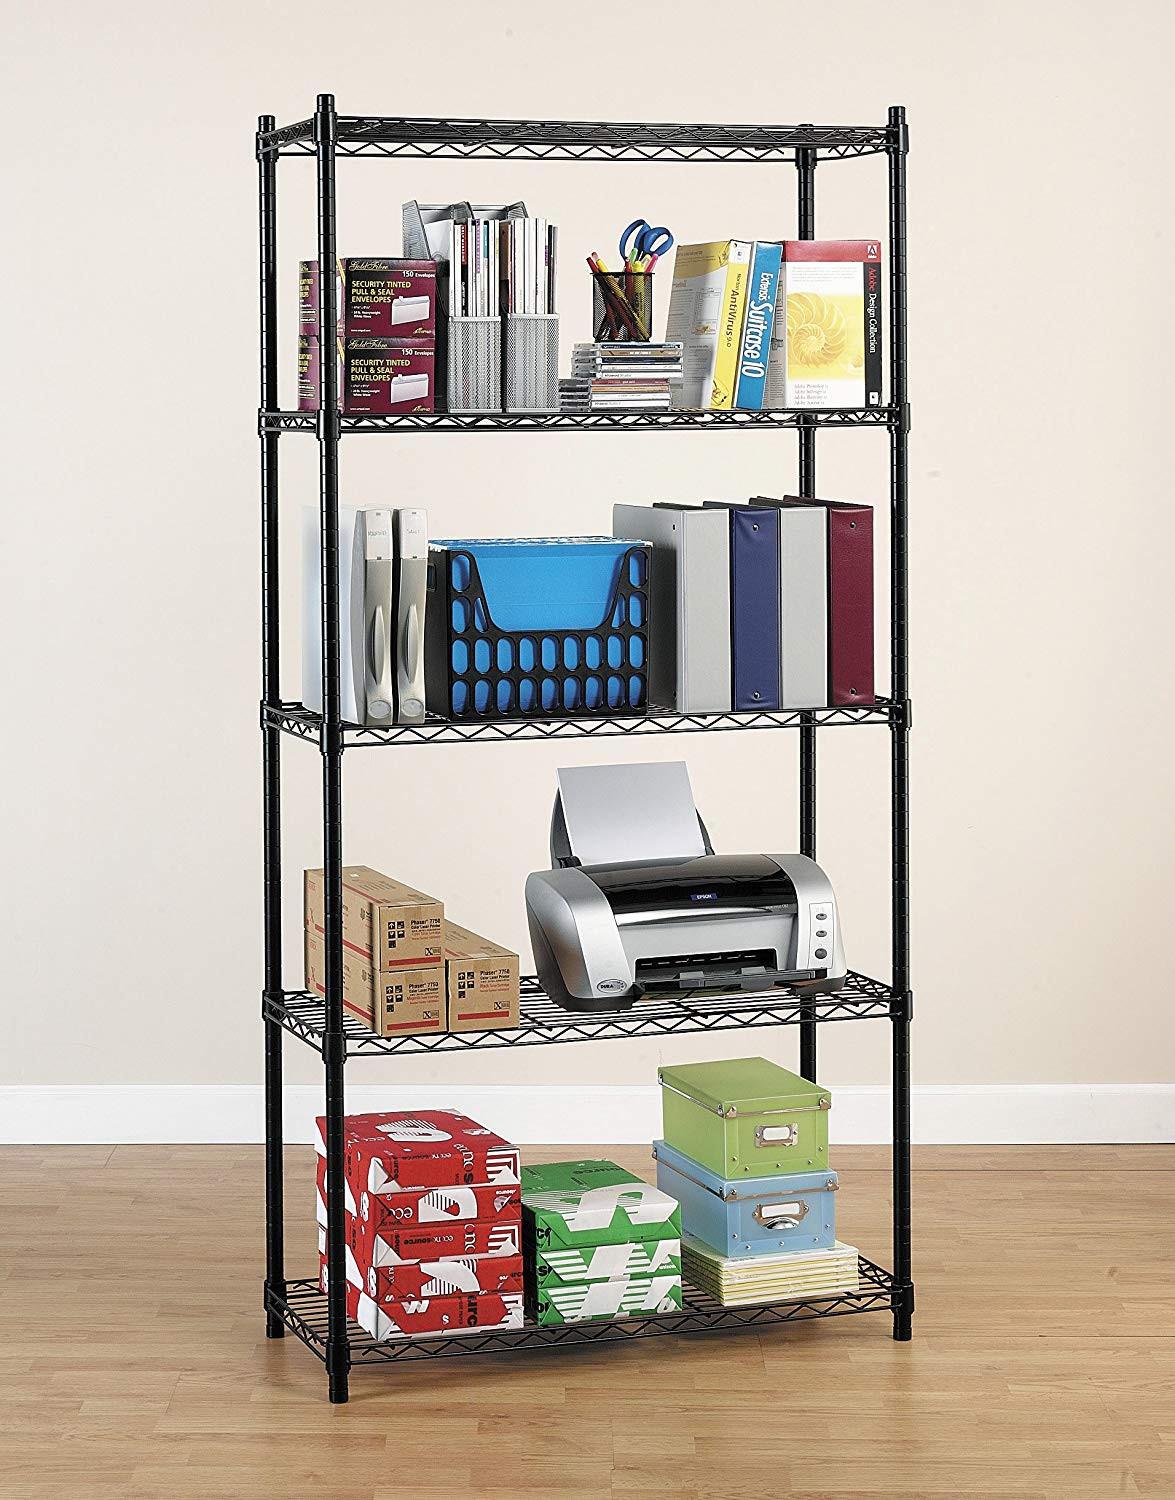 Best ideas about Pantry Shelving Units . Save or Pin New Shelving Unit 5 Tier Metal Racks Kit For fice Garage Now.